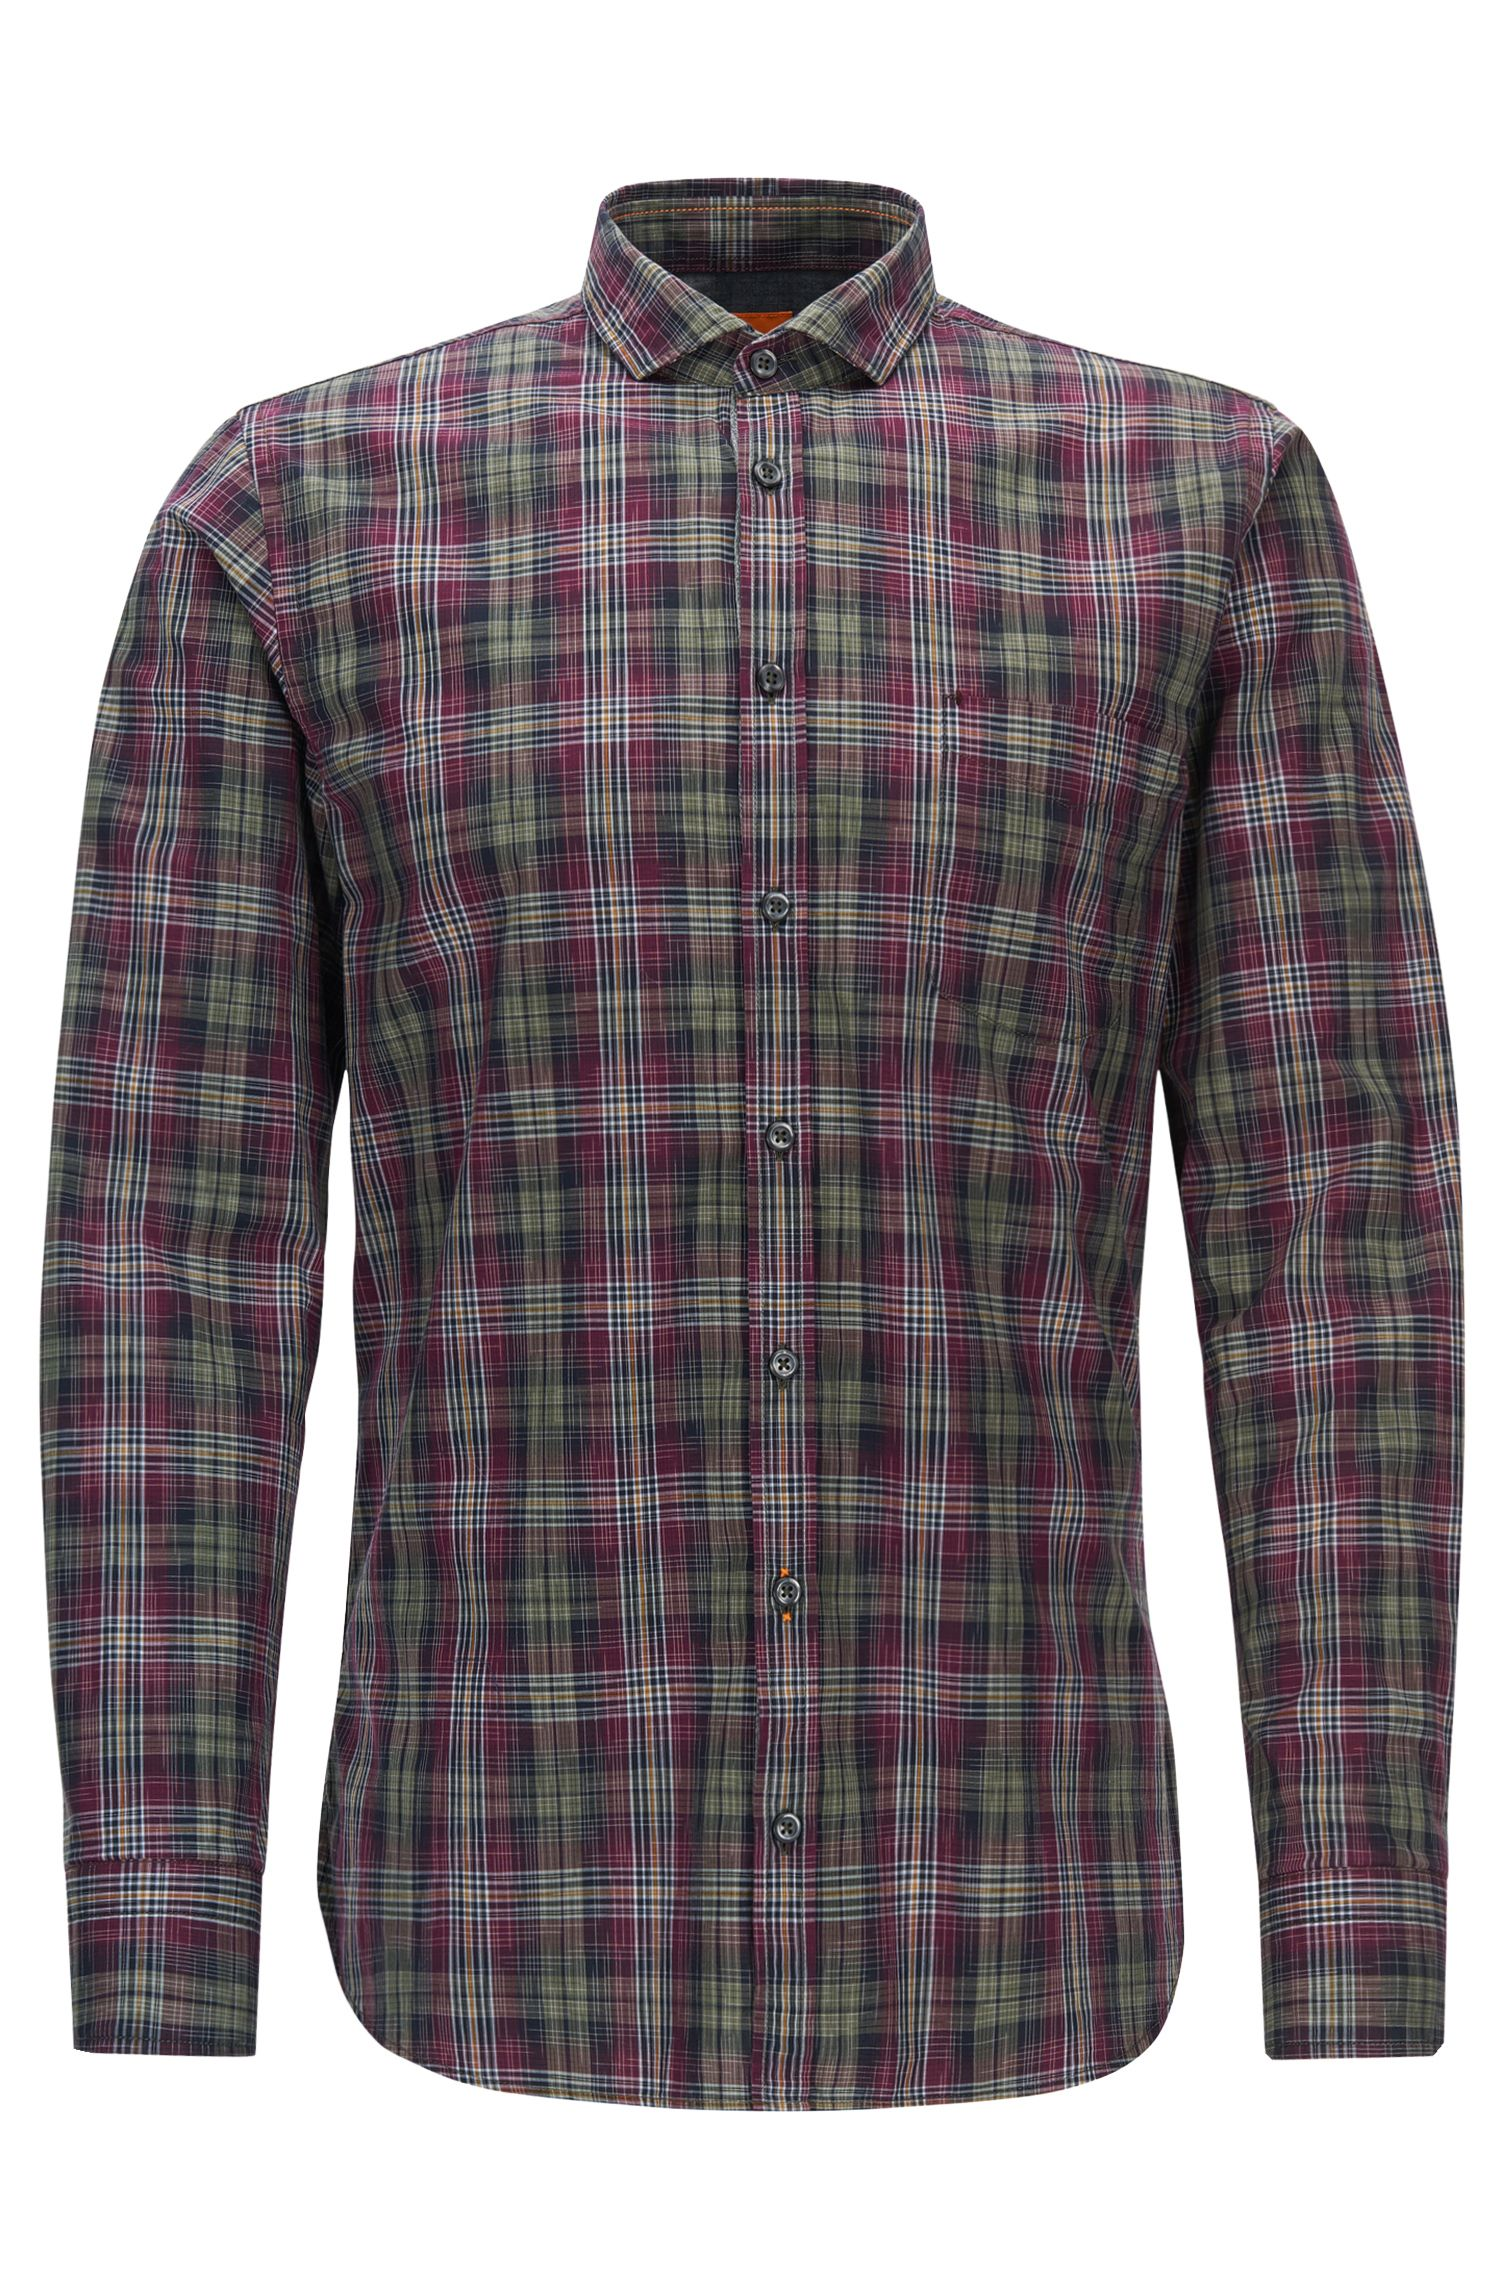 Plaid Cotton Button Down Shirt, Slim Fit | Cattitude